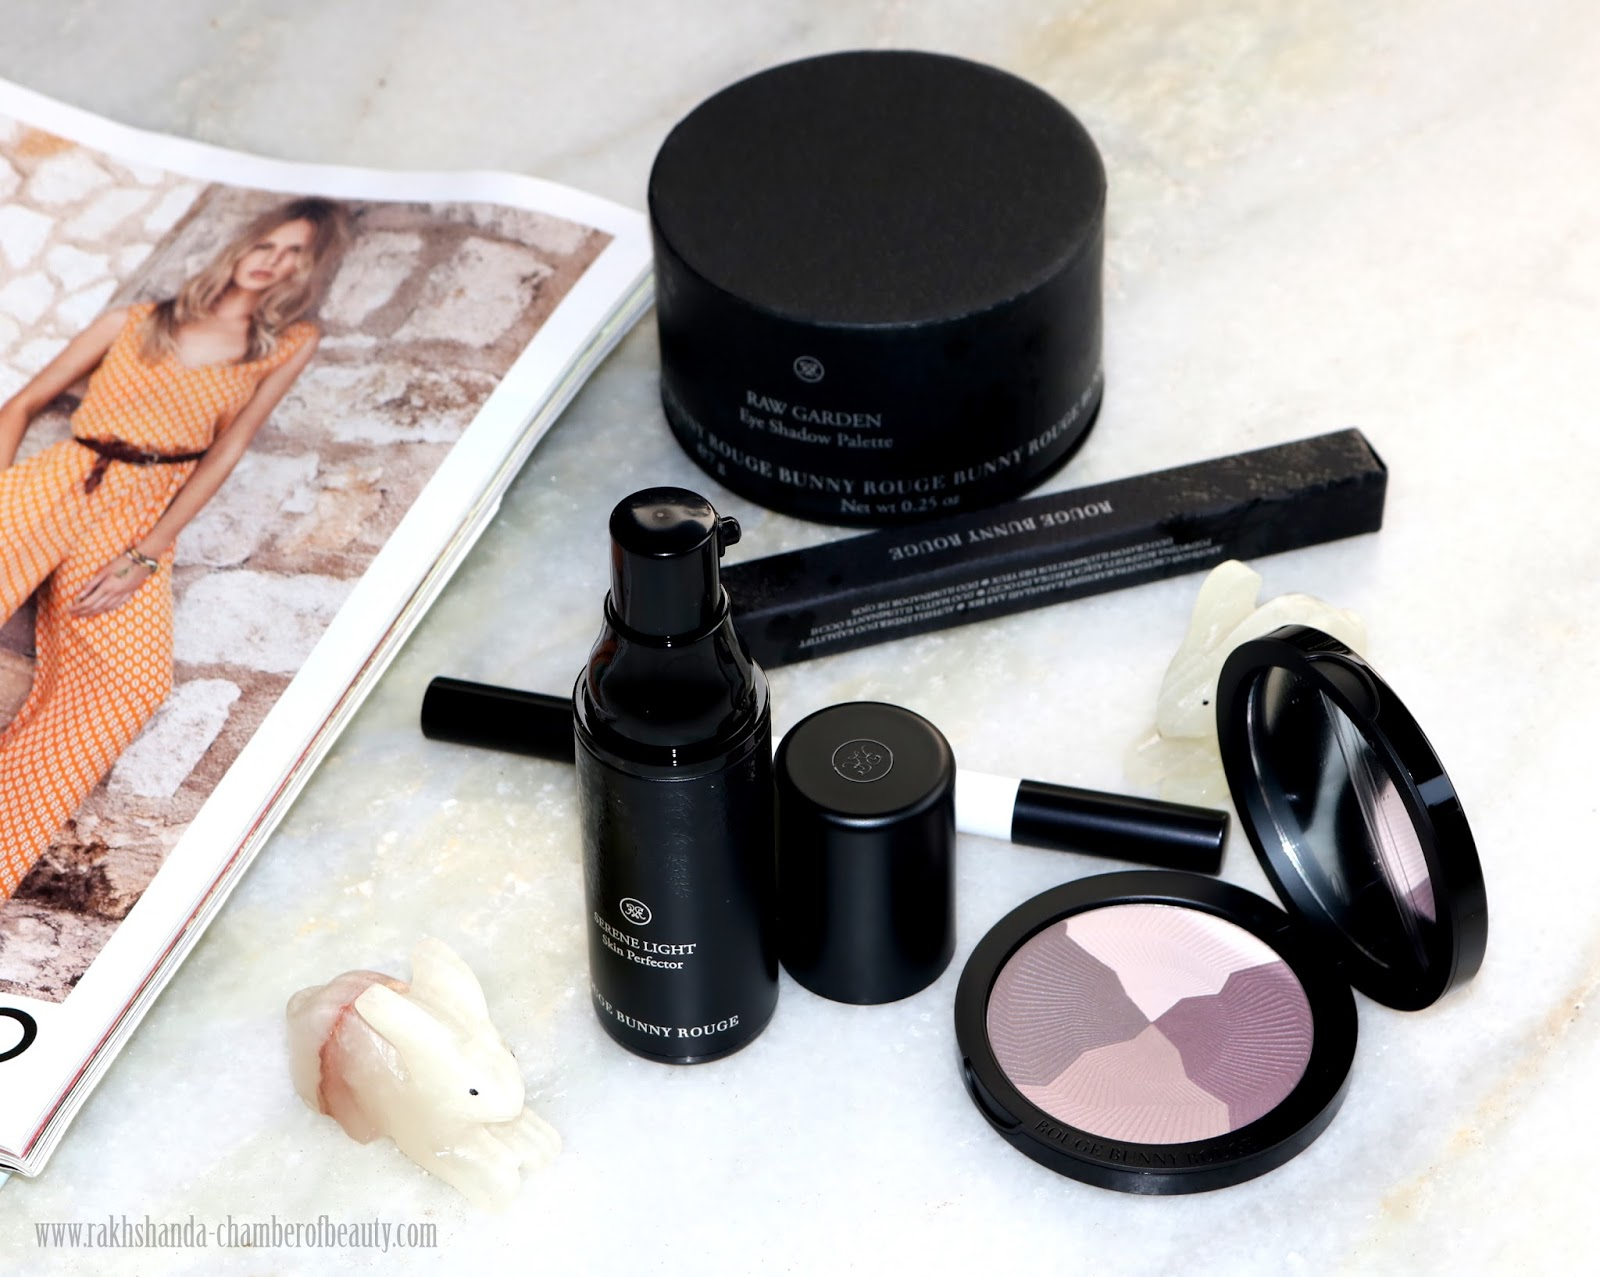 Rouge Bunny Rouge Spring 2016 Makeup Products - Preview